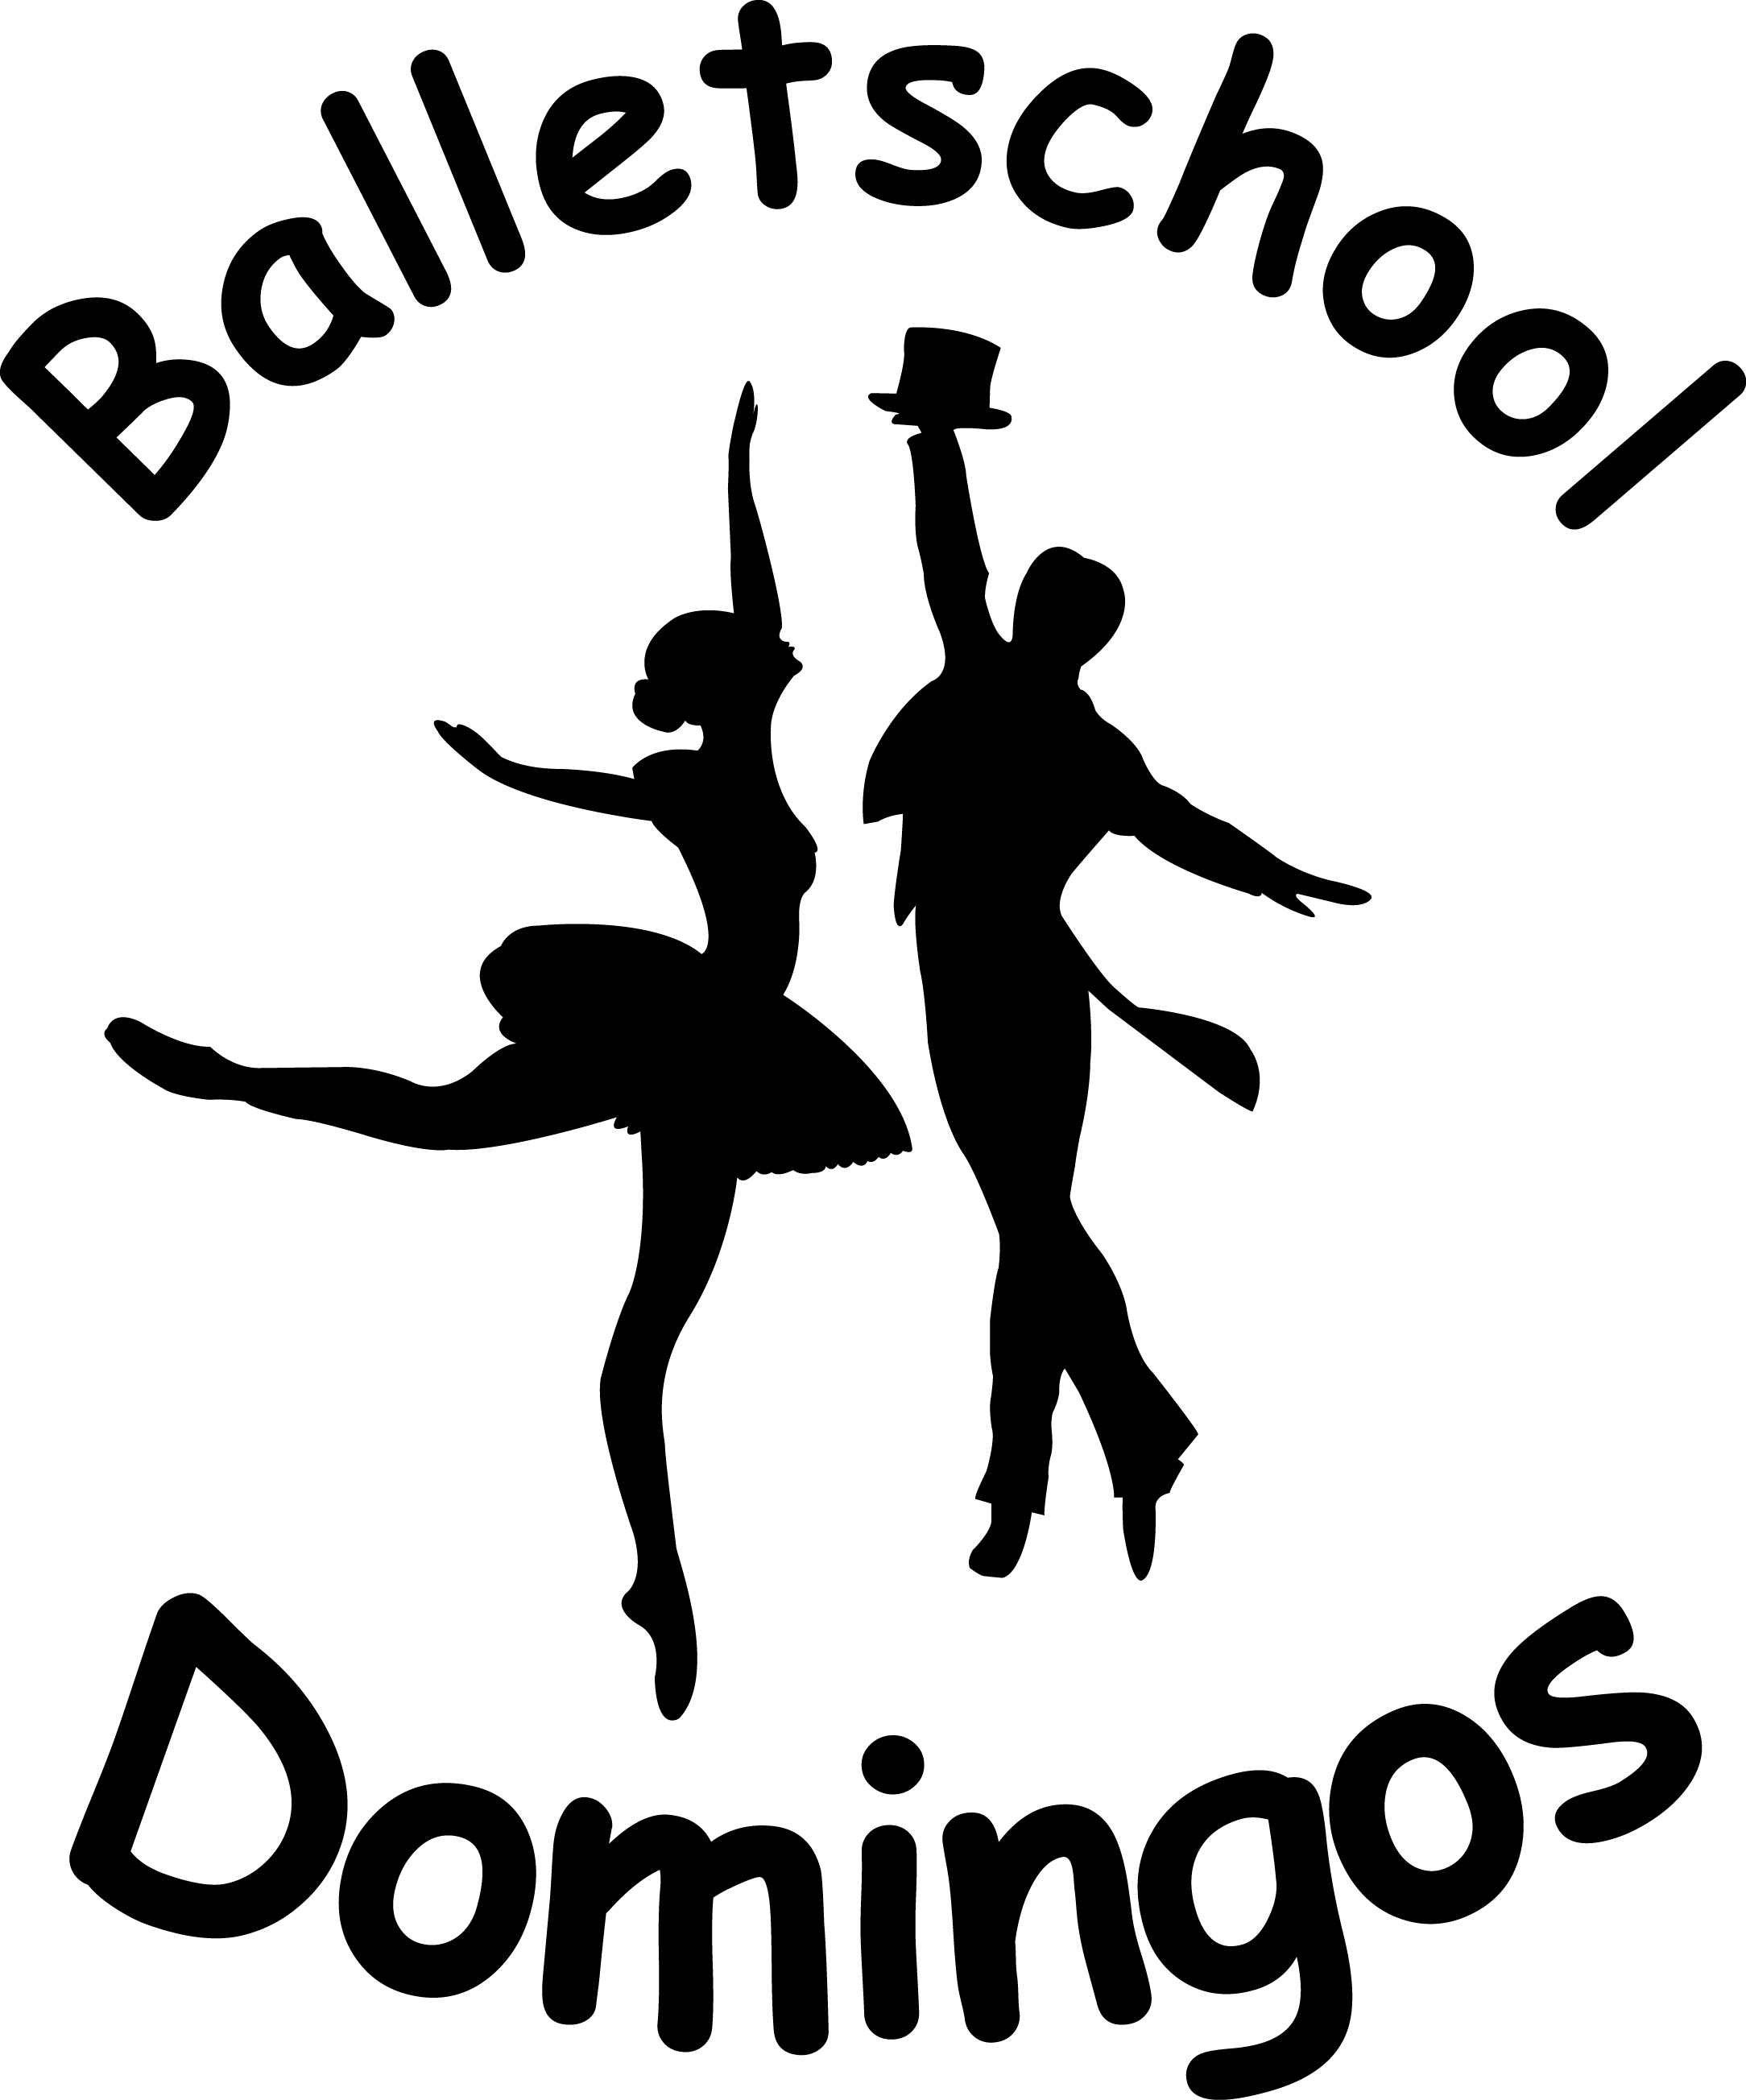 Balletschool Domingos